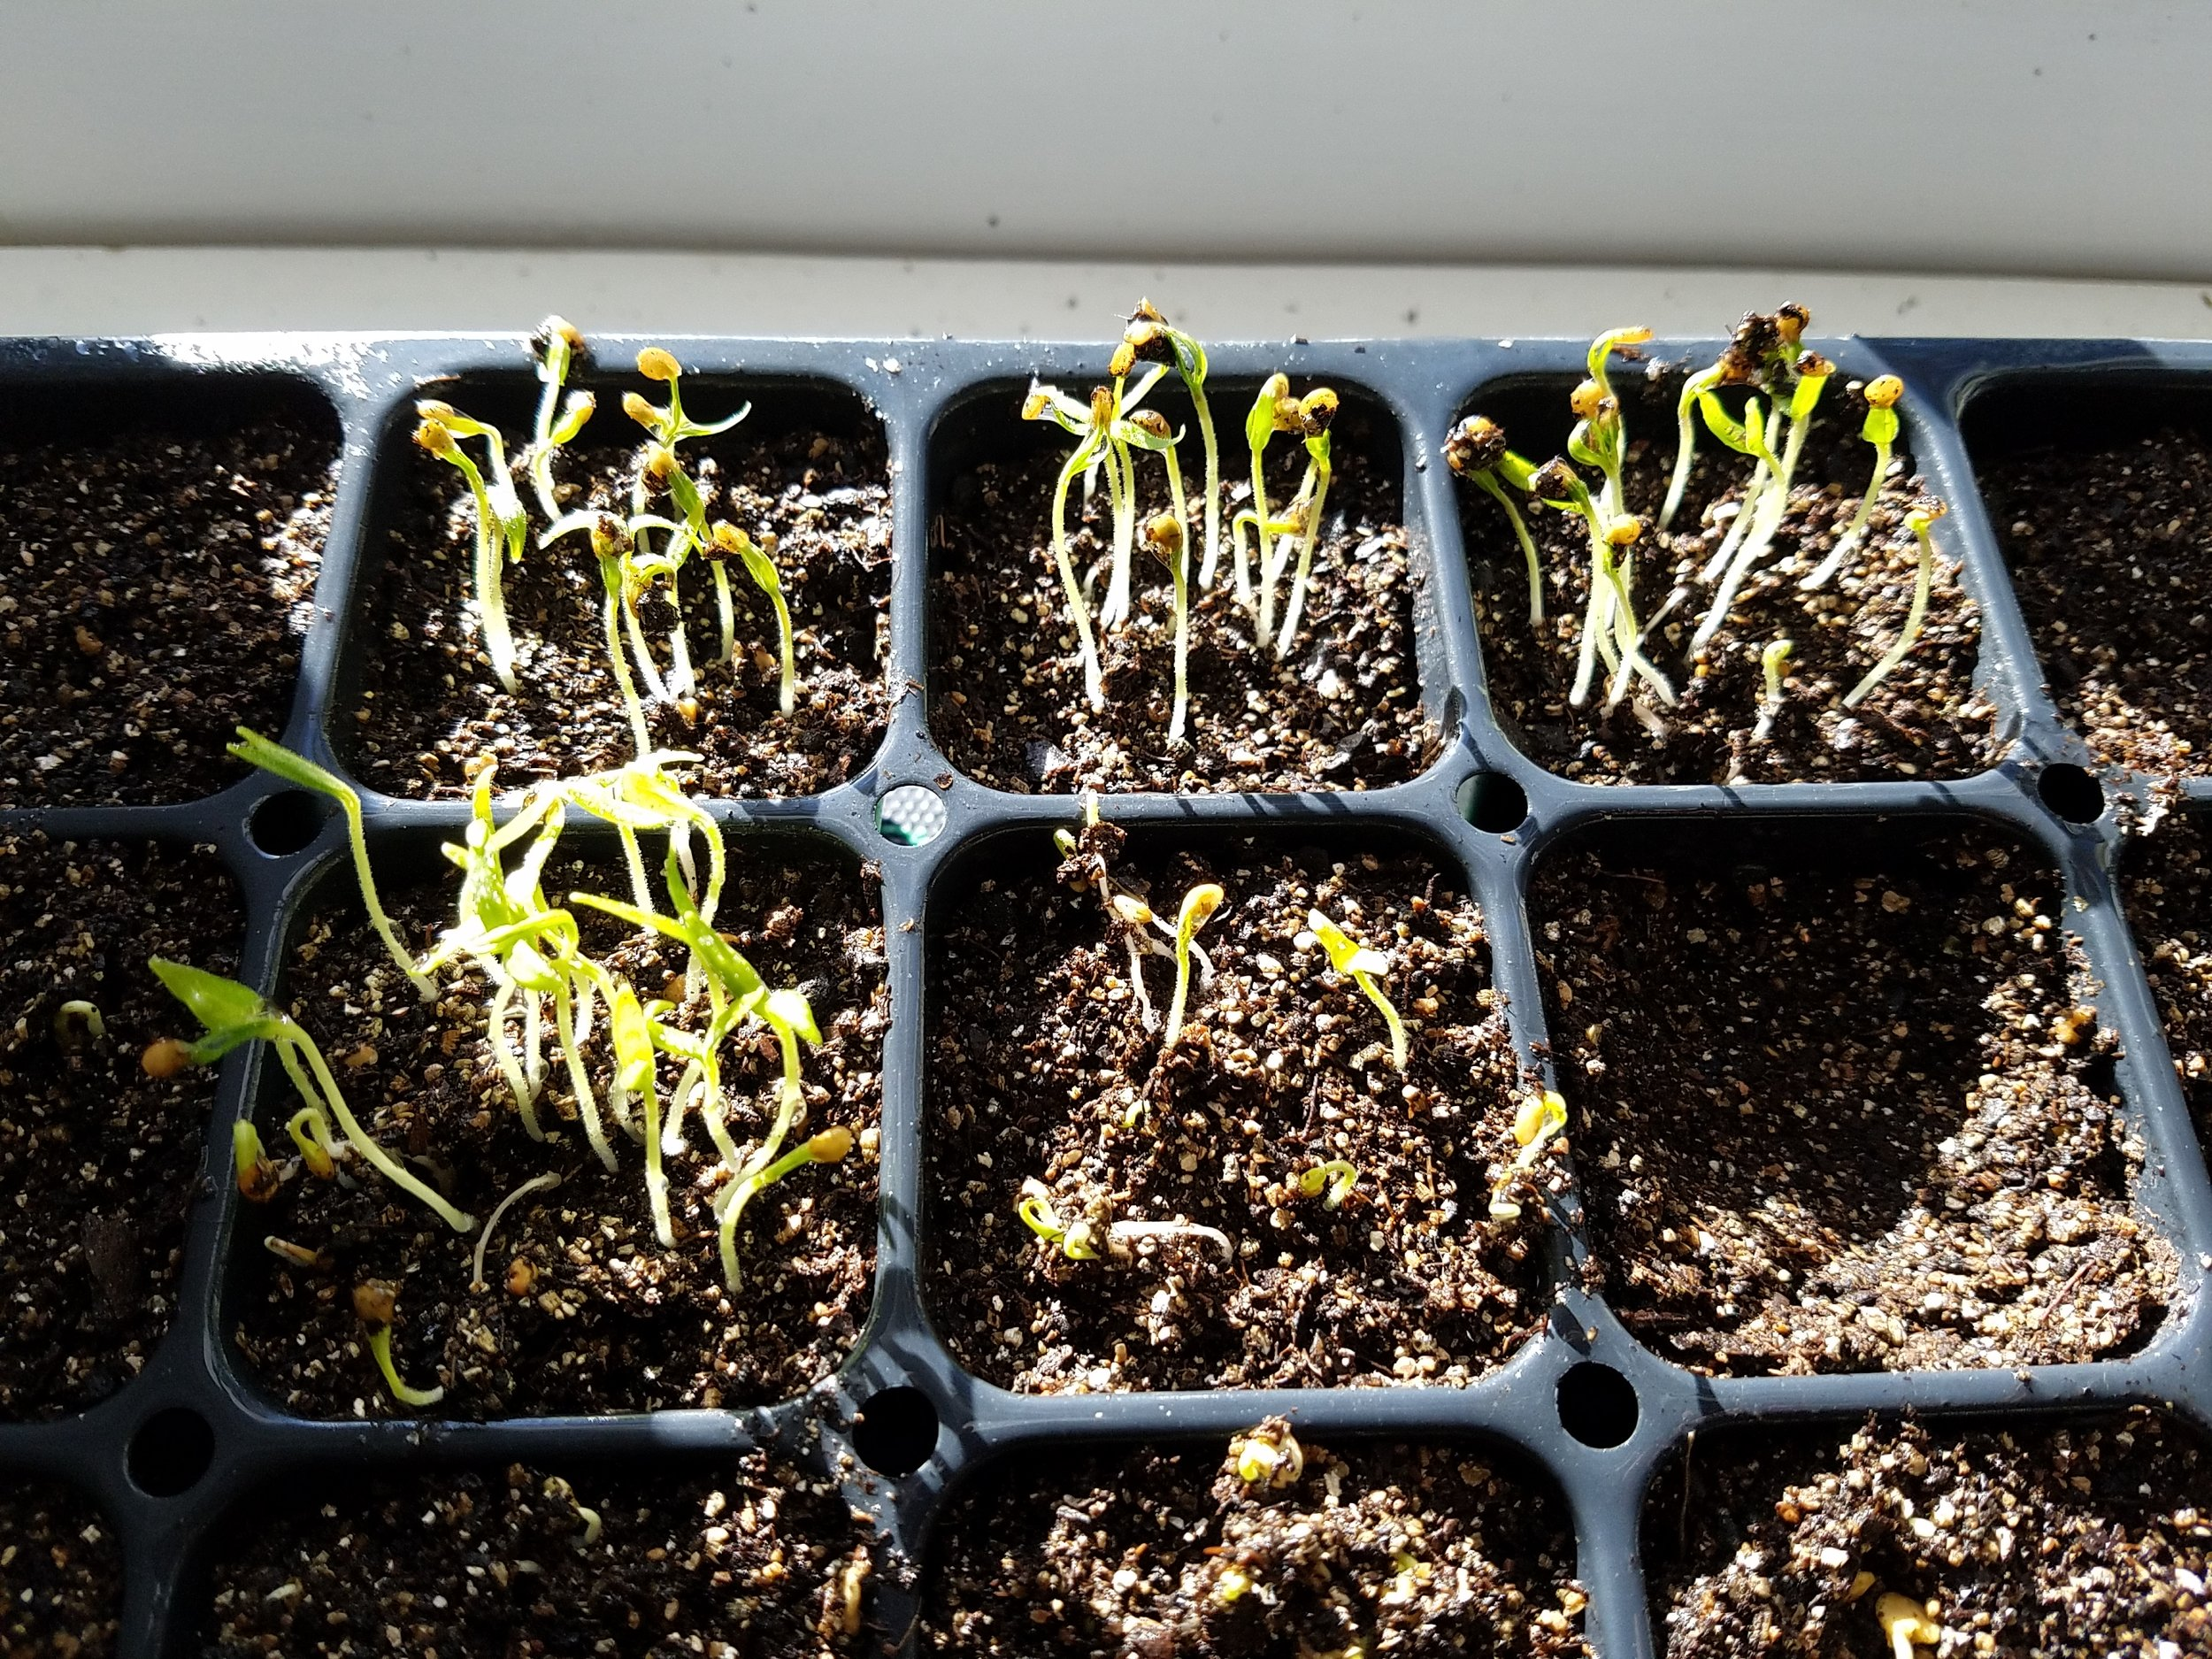 Eggplant seedlings emerging